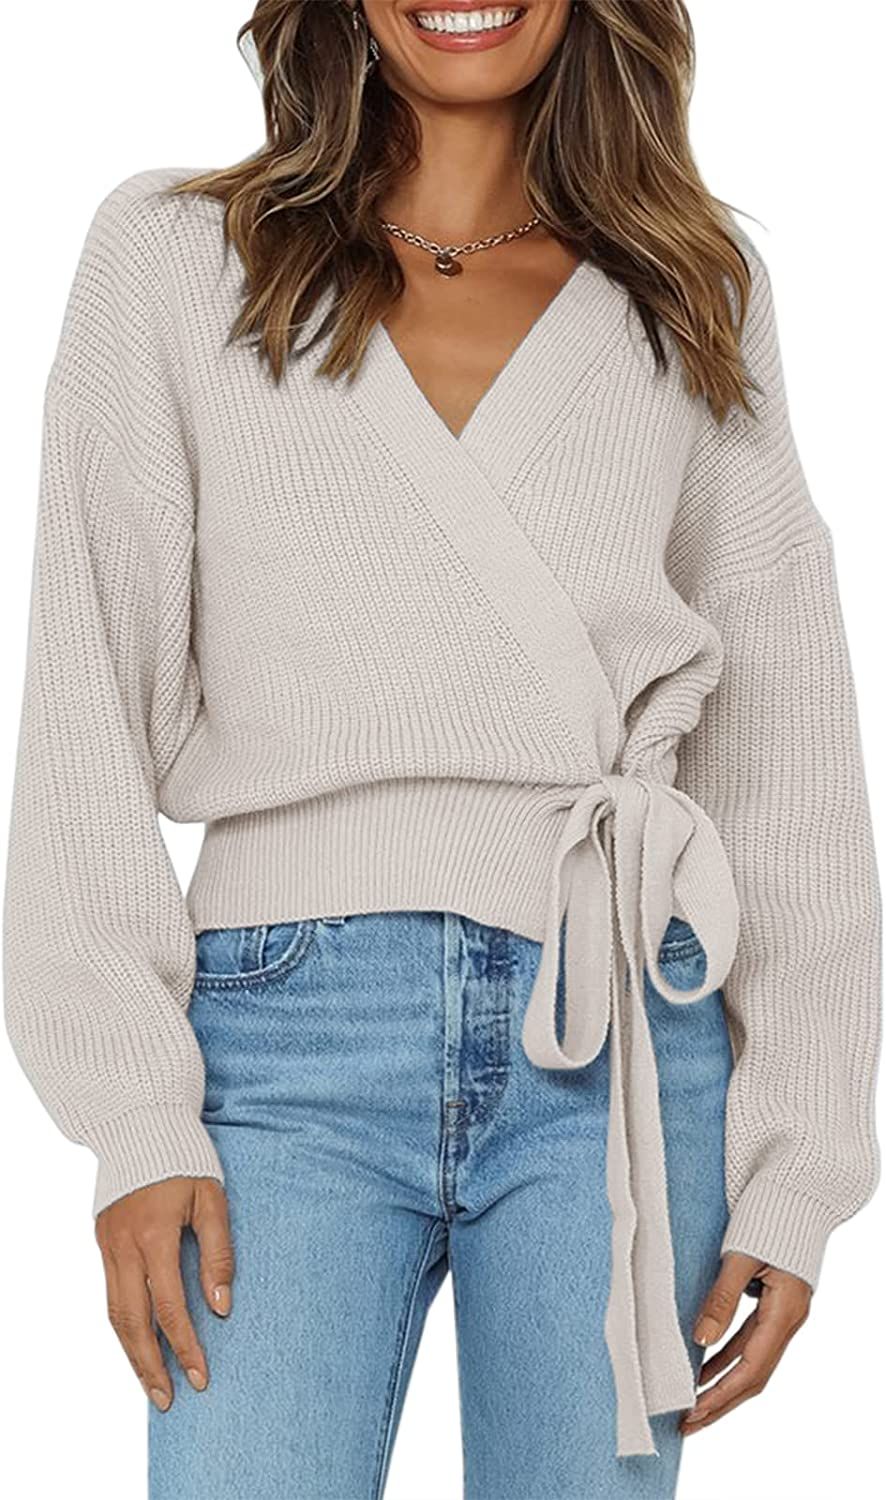 Fessceruna Womens V Neck Wrap Sweater Batwing Long Sleeve Tie Front Belted Chunky Jumper Blouse Pullover